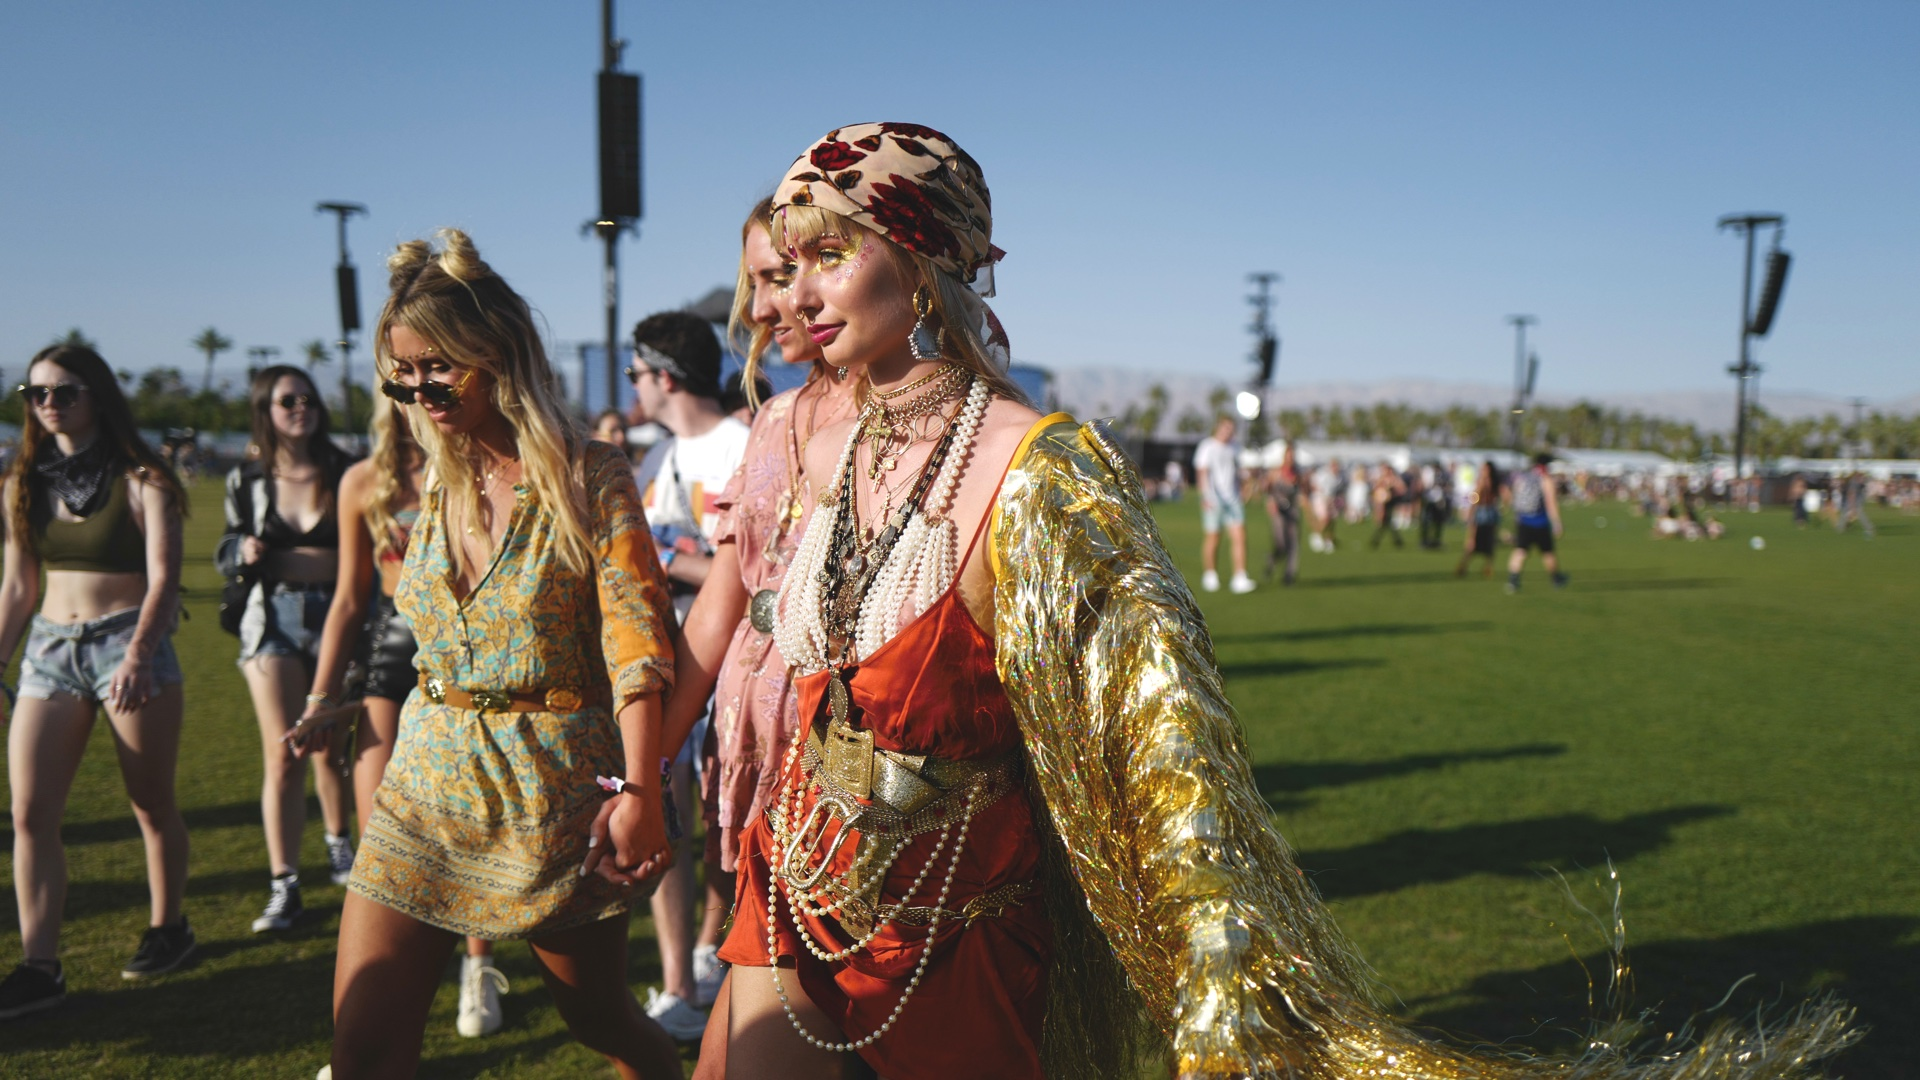 New Trends All About Coachella Festival And The Fashion Statement 2 new trends New Trends: All About Coachella Festival And The Fashion Statement New Trends All About Coachella Festival And The Fashion Statement 5